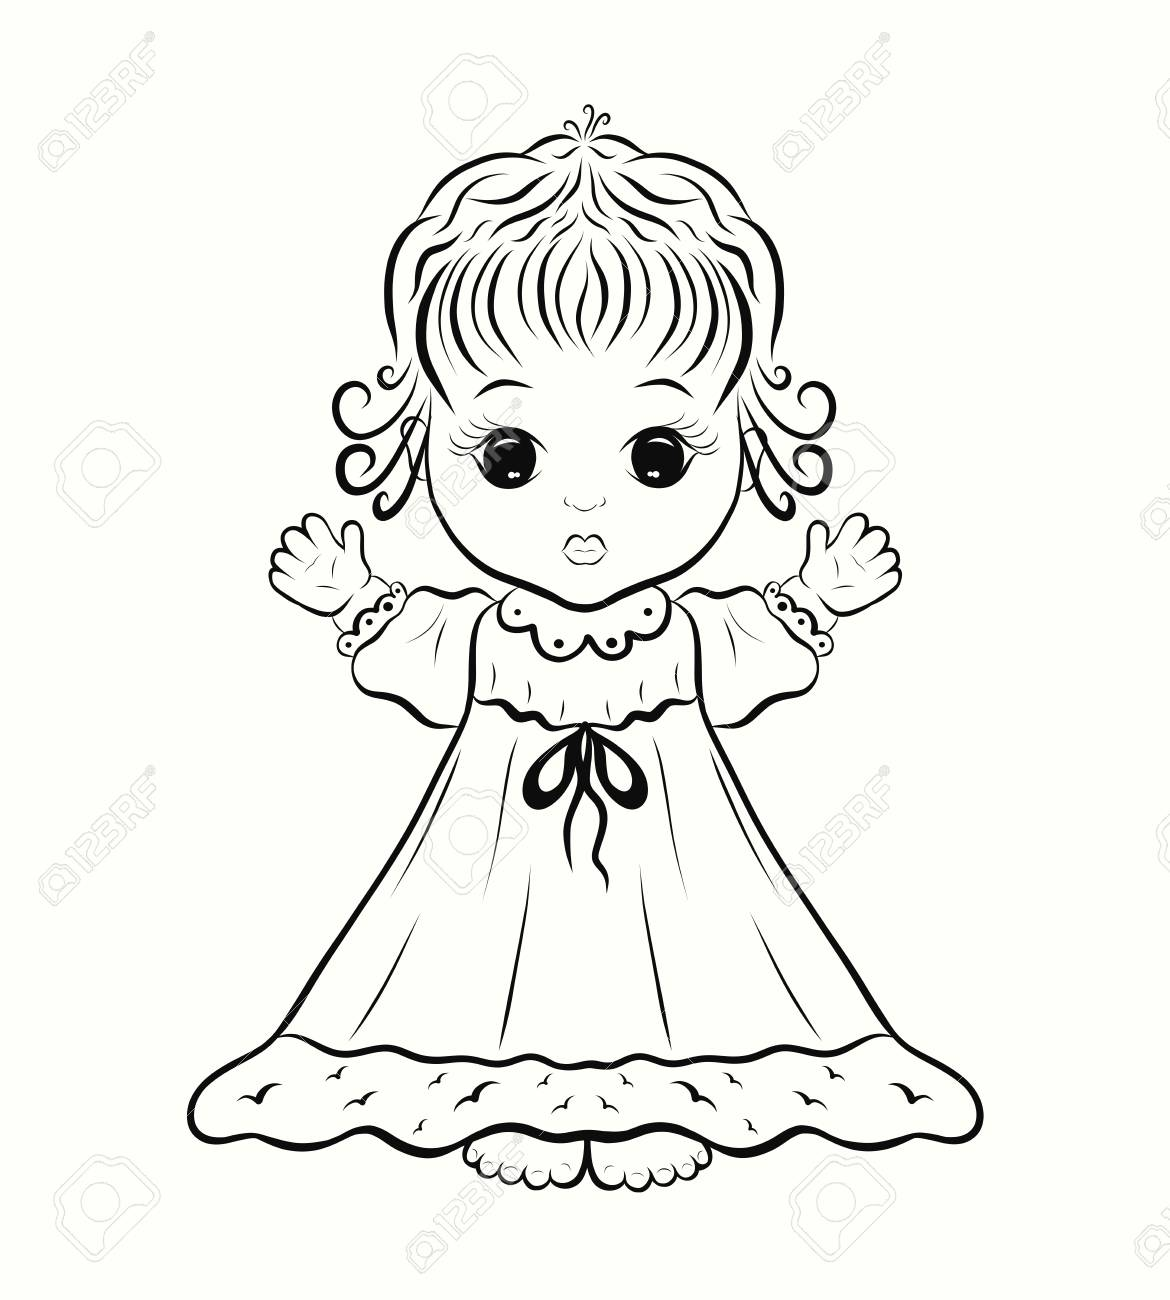 A Cute Little Girl In A Dress A Coloring Page